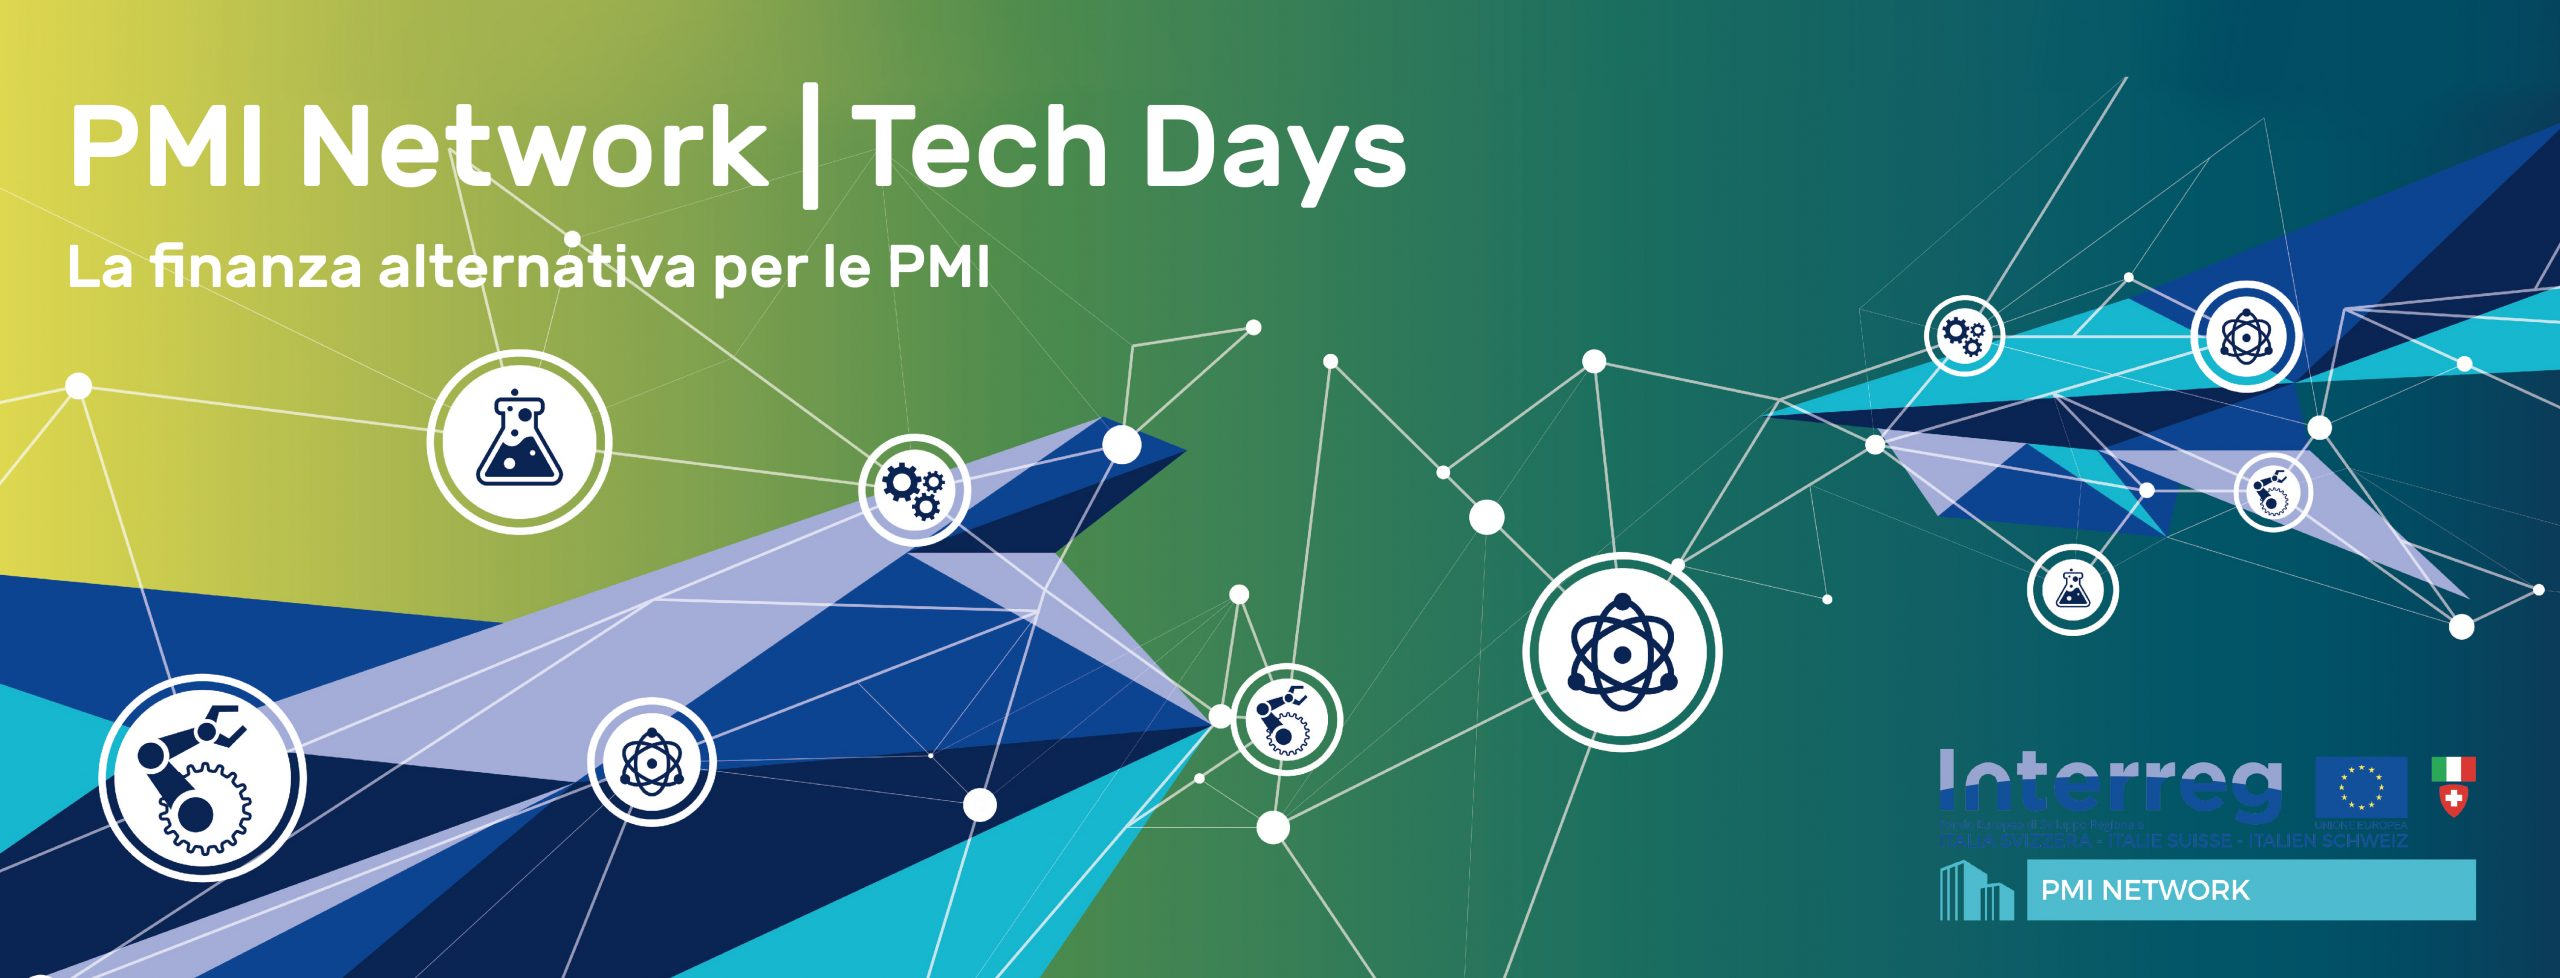 immagine-header-pmi-network_tech-day-2020-10